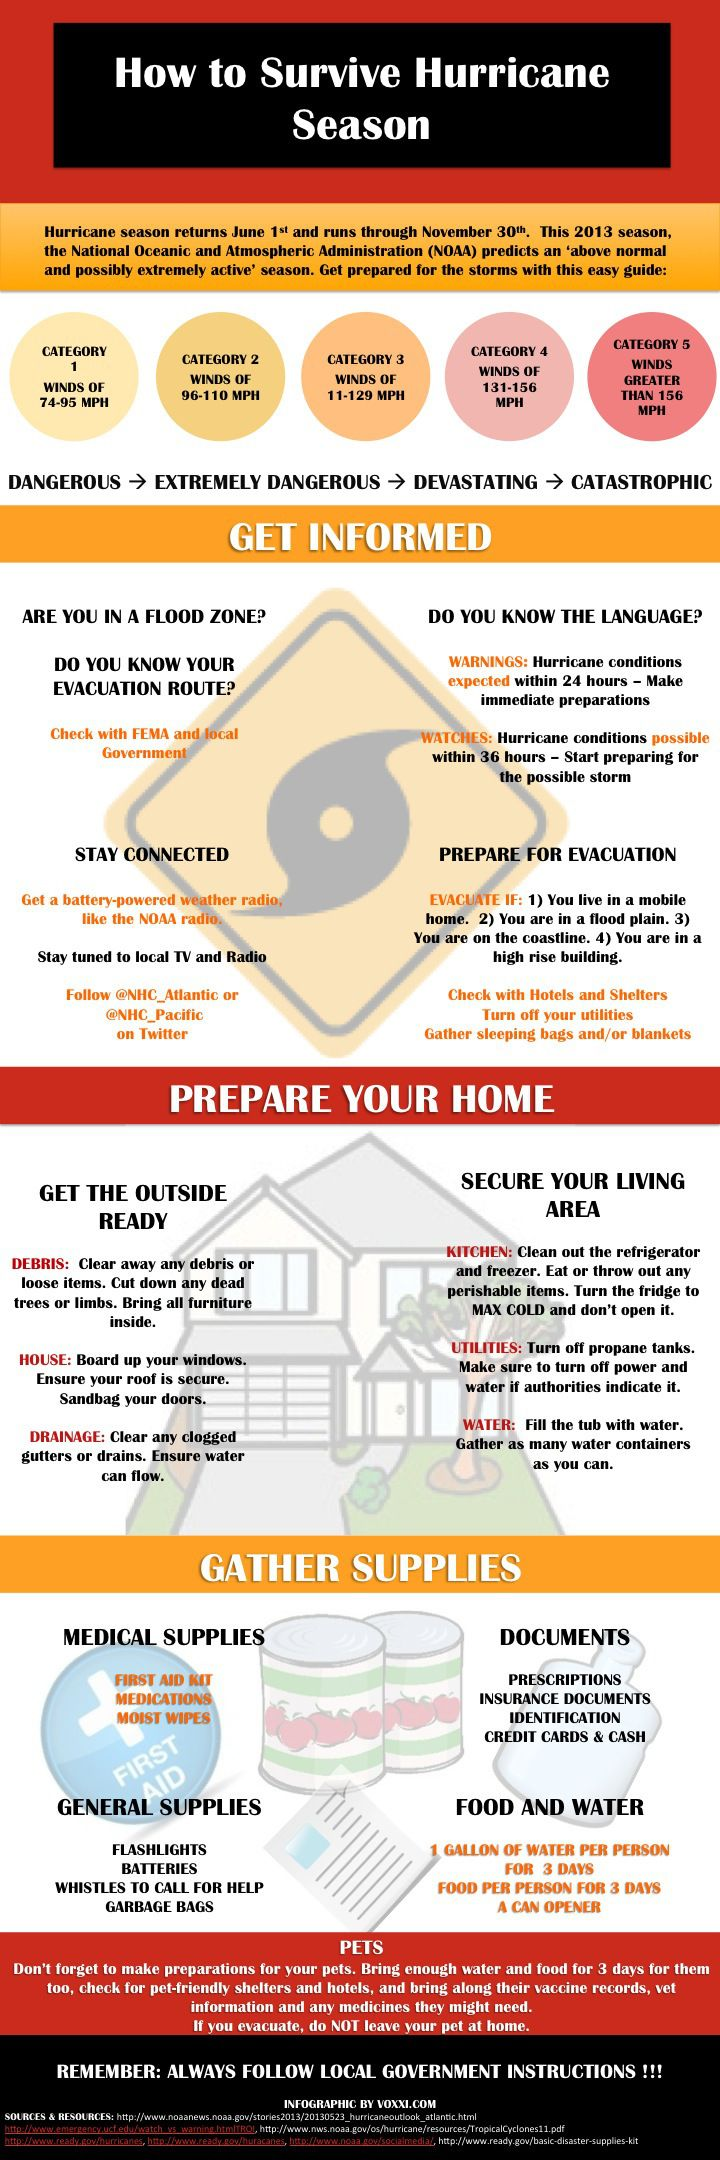 How to Survive Hurricane Season | some key information about hurricane preparedness #survivallife www.survivallife.com